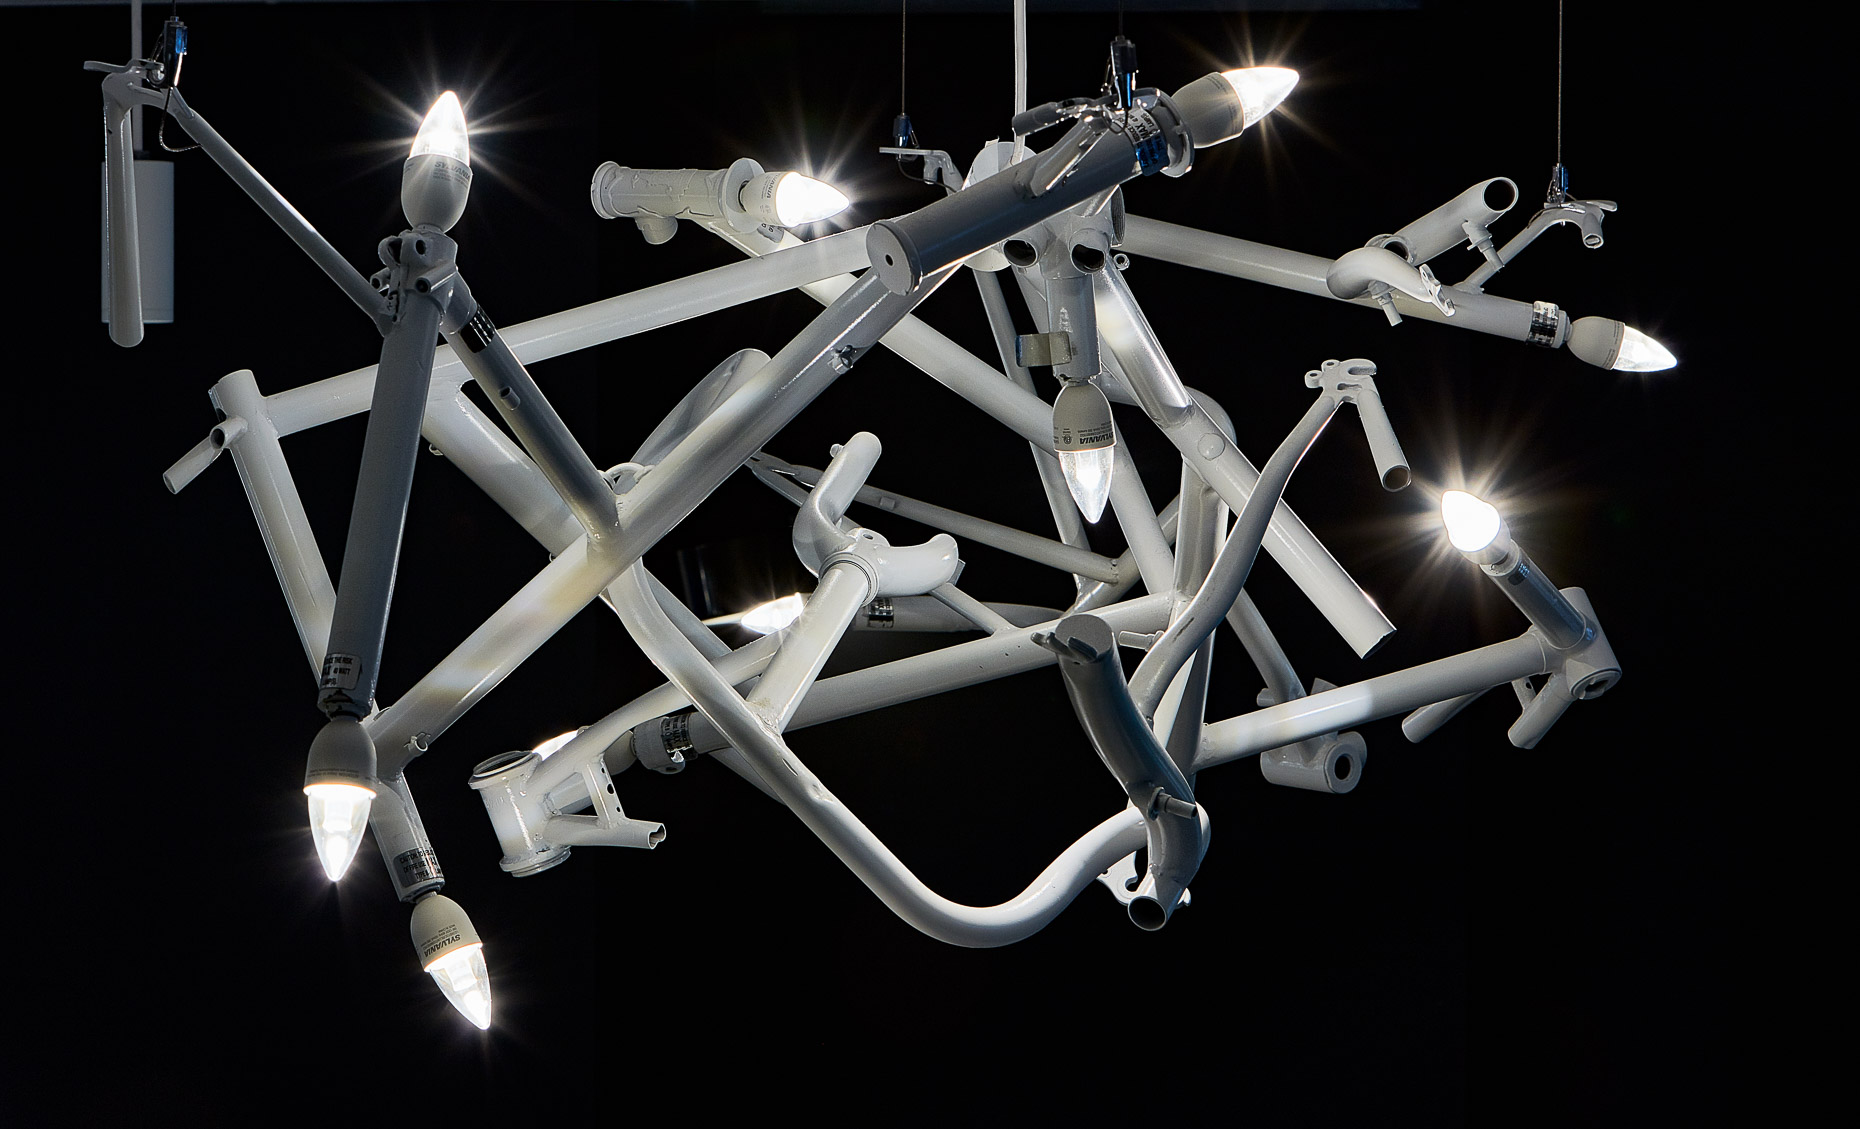 Custom light fixture made of bicycle parts